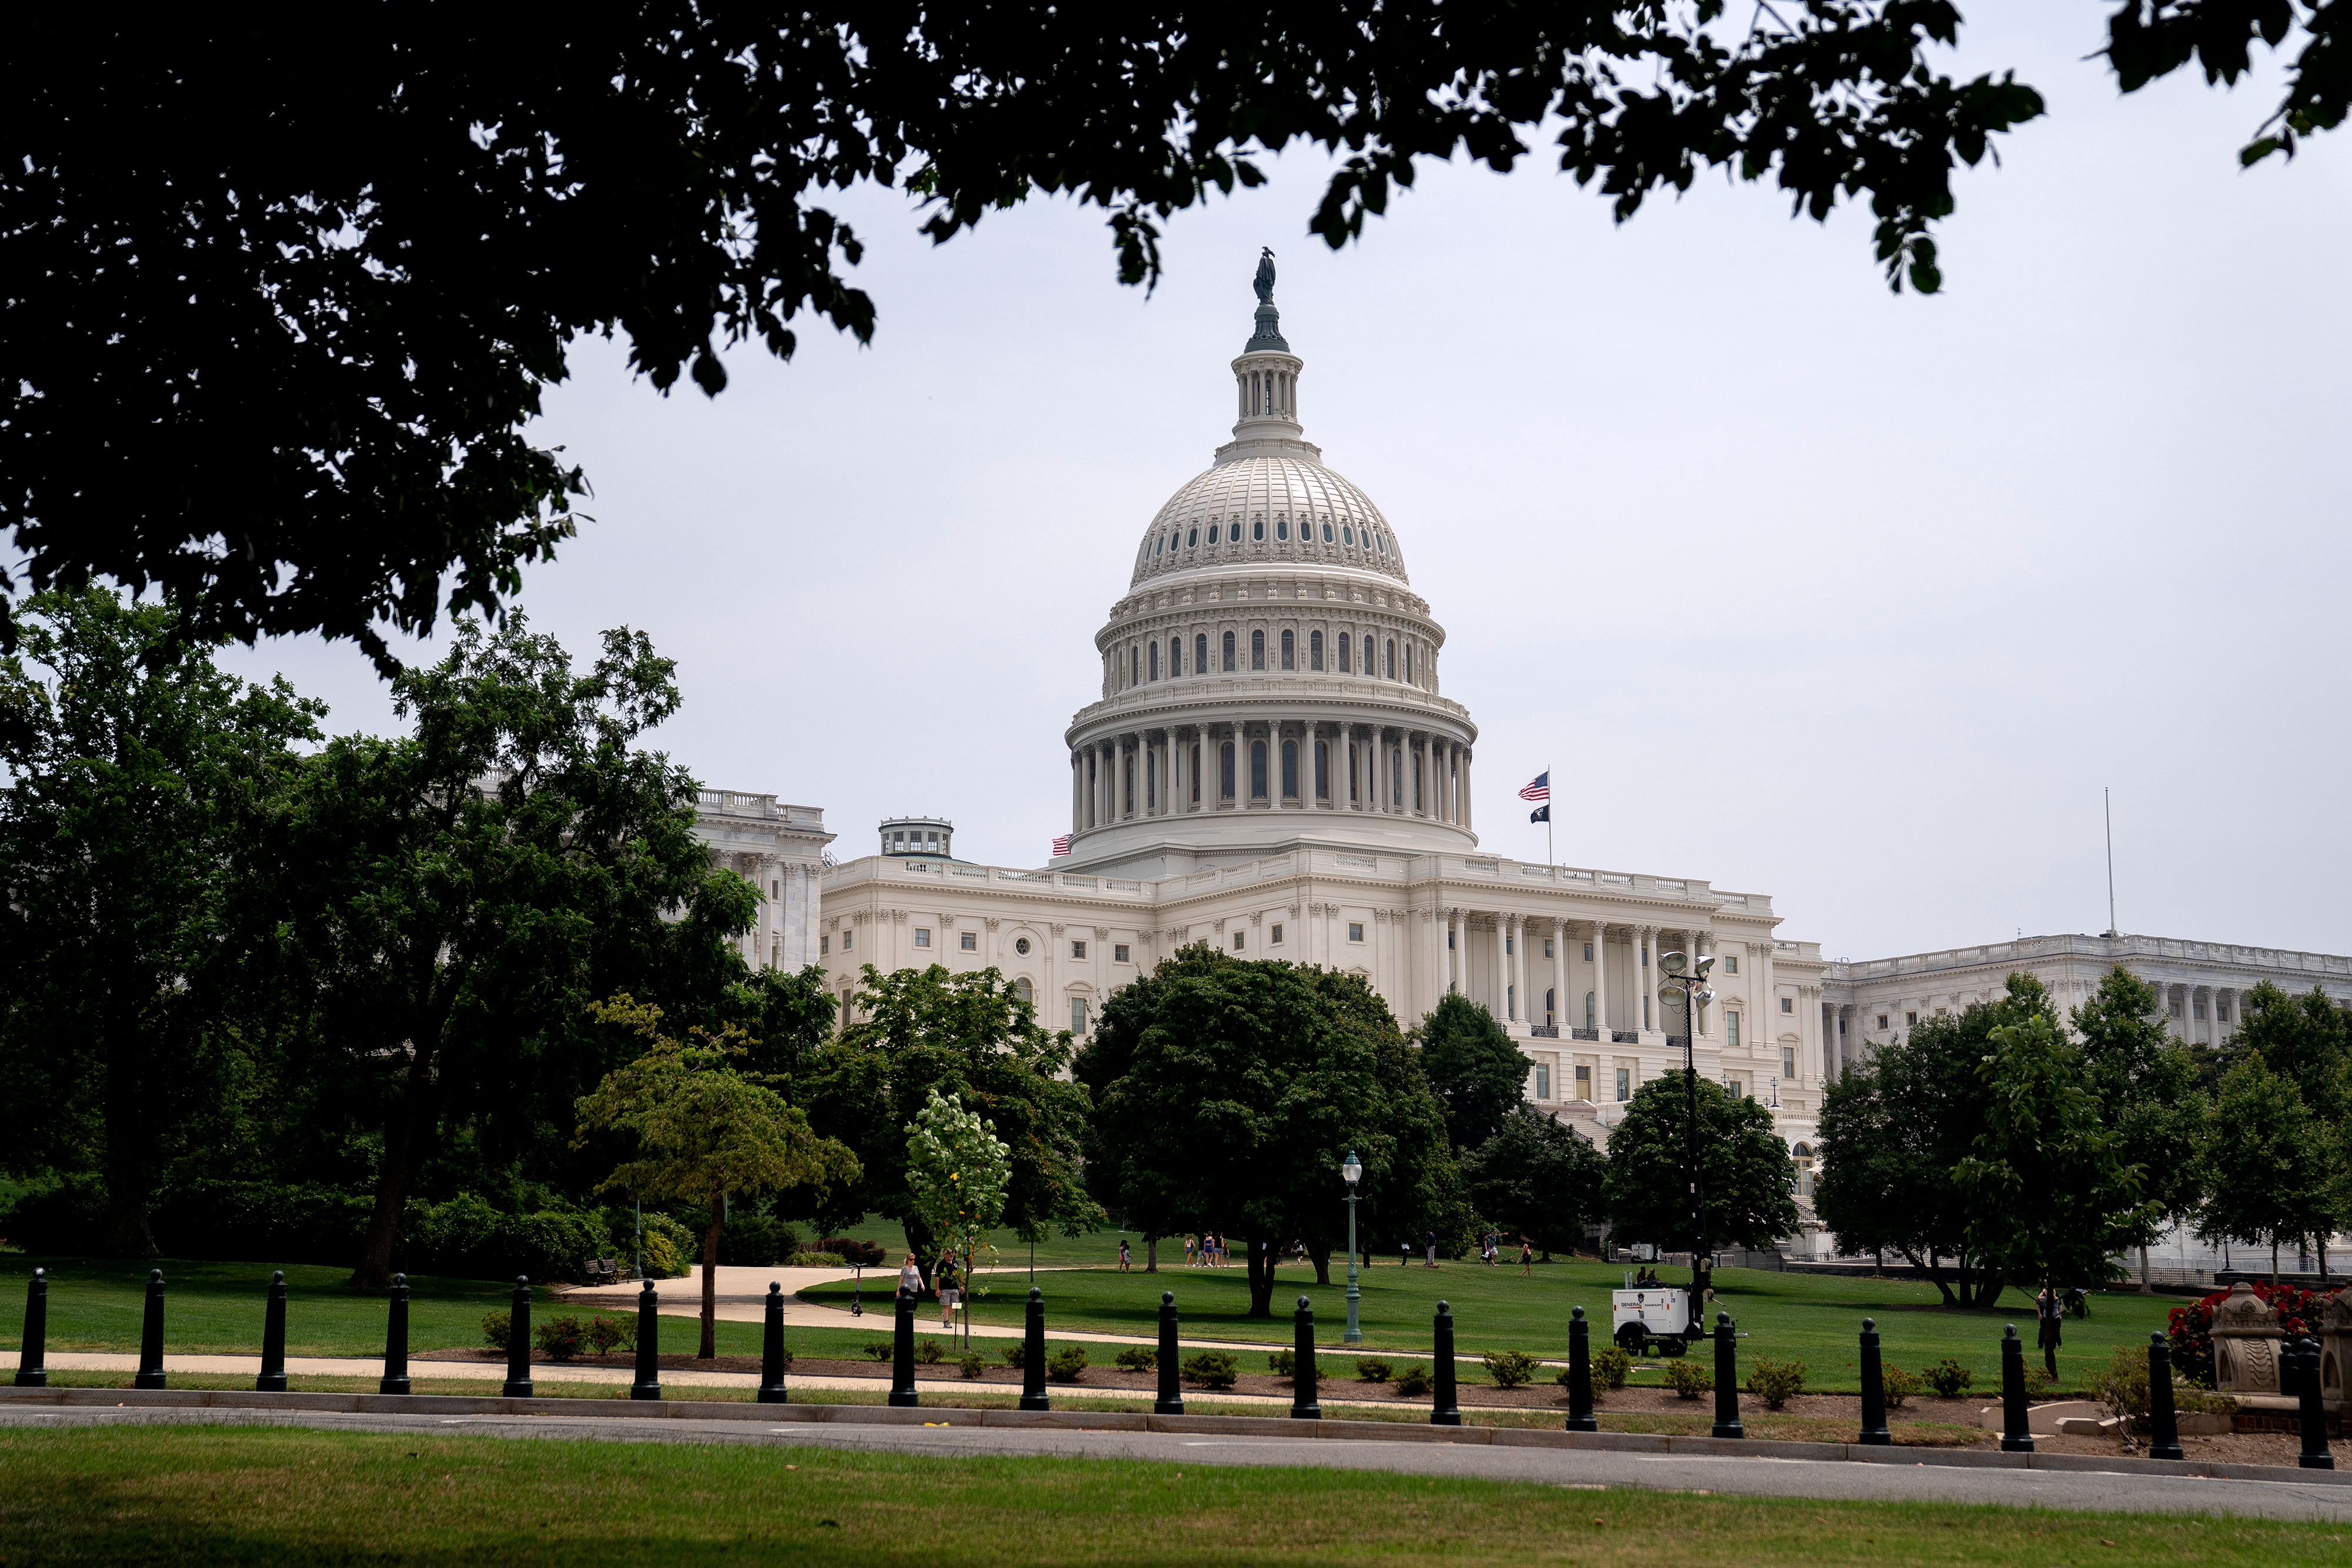 The US Capitol in Washington, DC, on July 25, 2021.